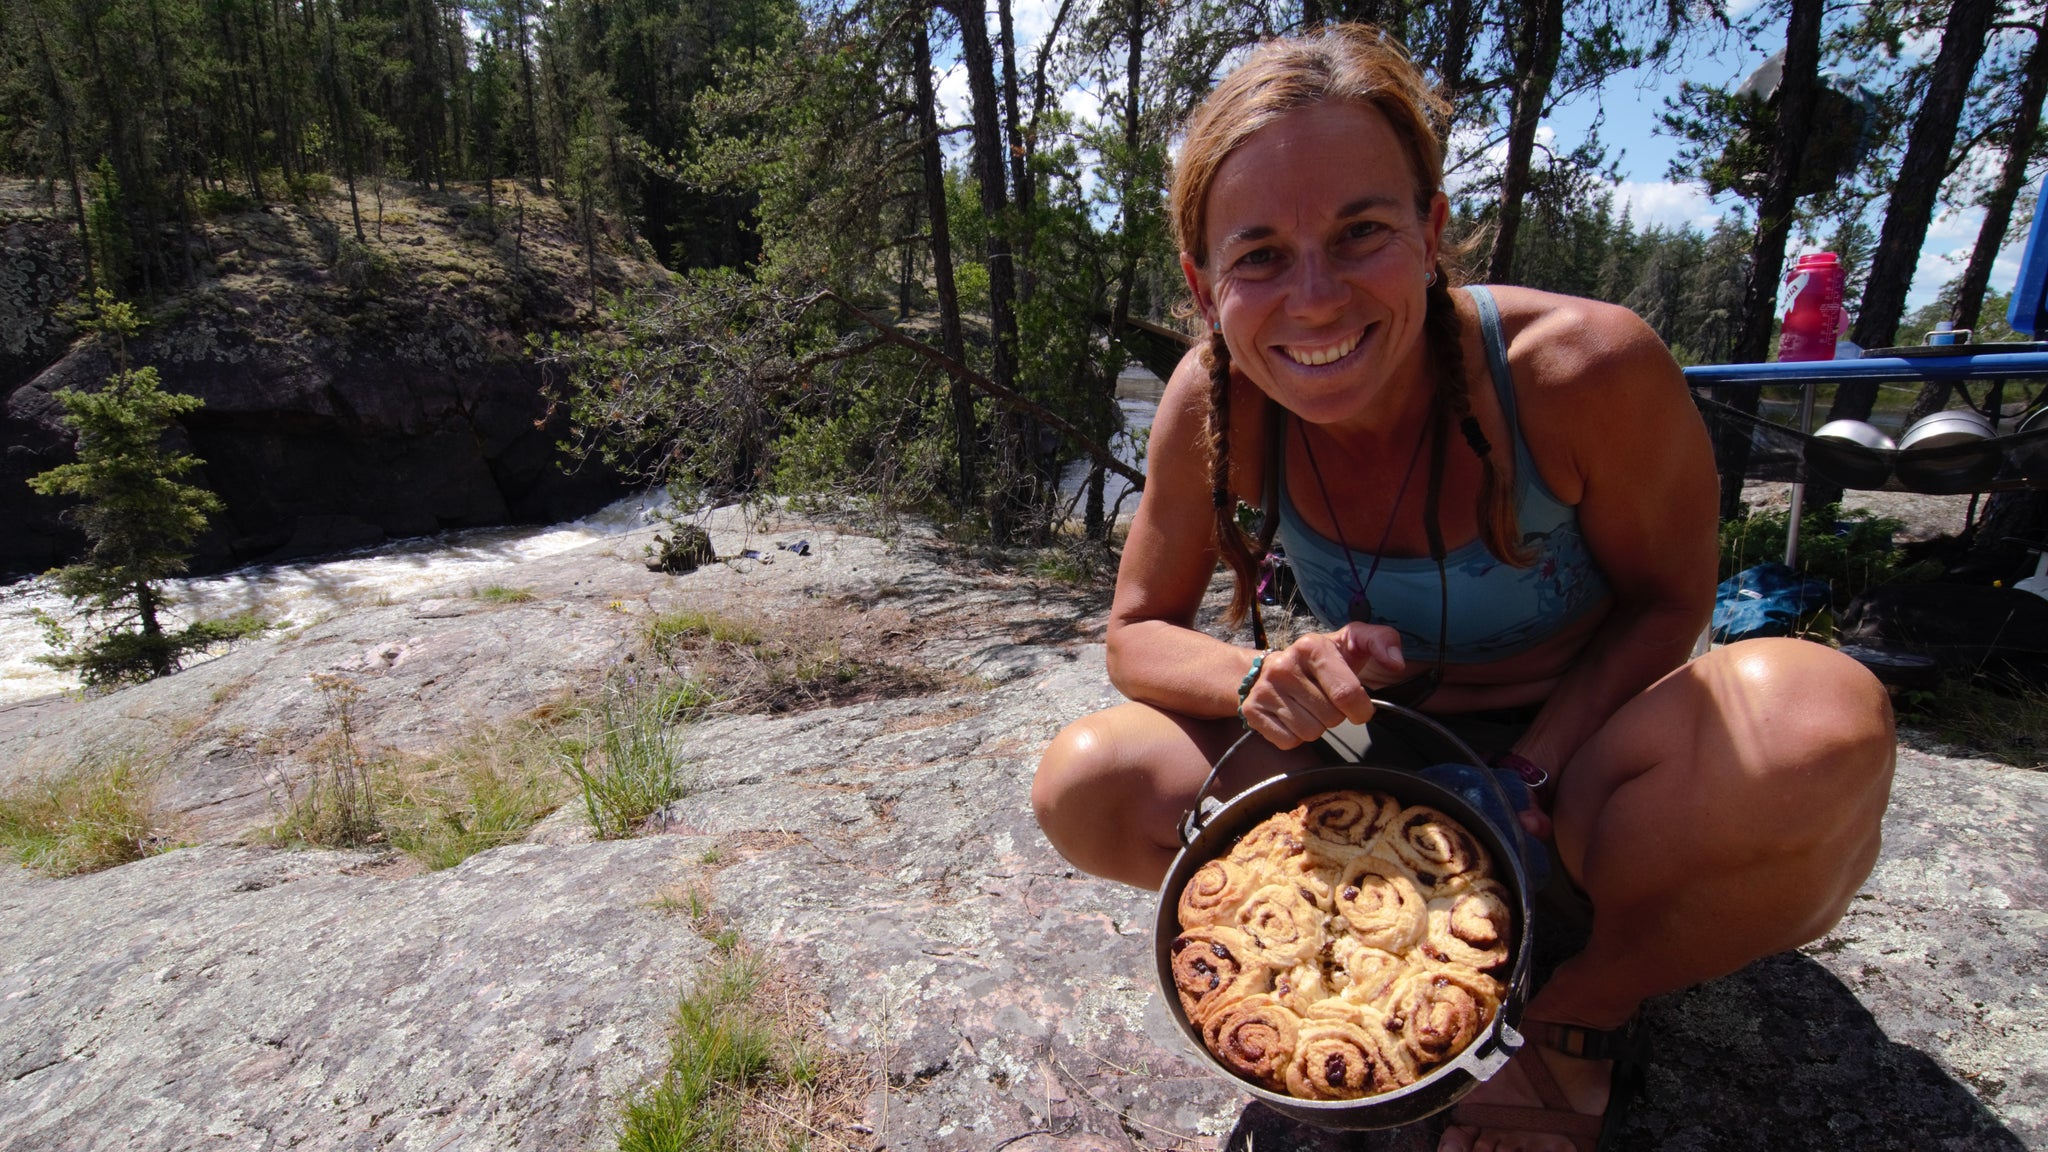 womanoutside crouched on a rock holding out a dutch oven full of cinnamon buns made while camping